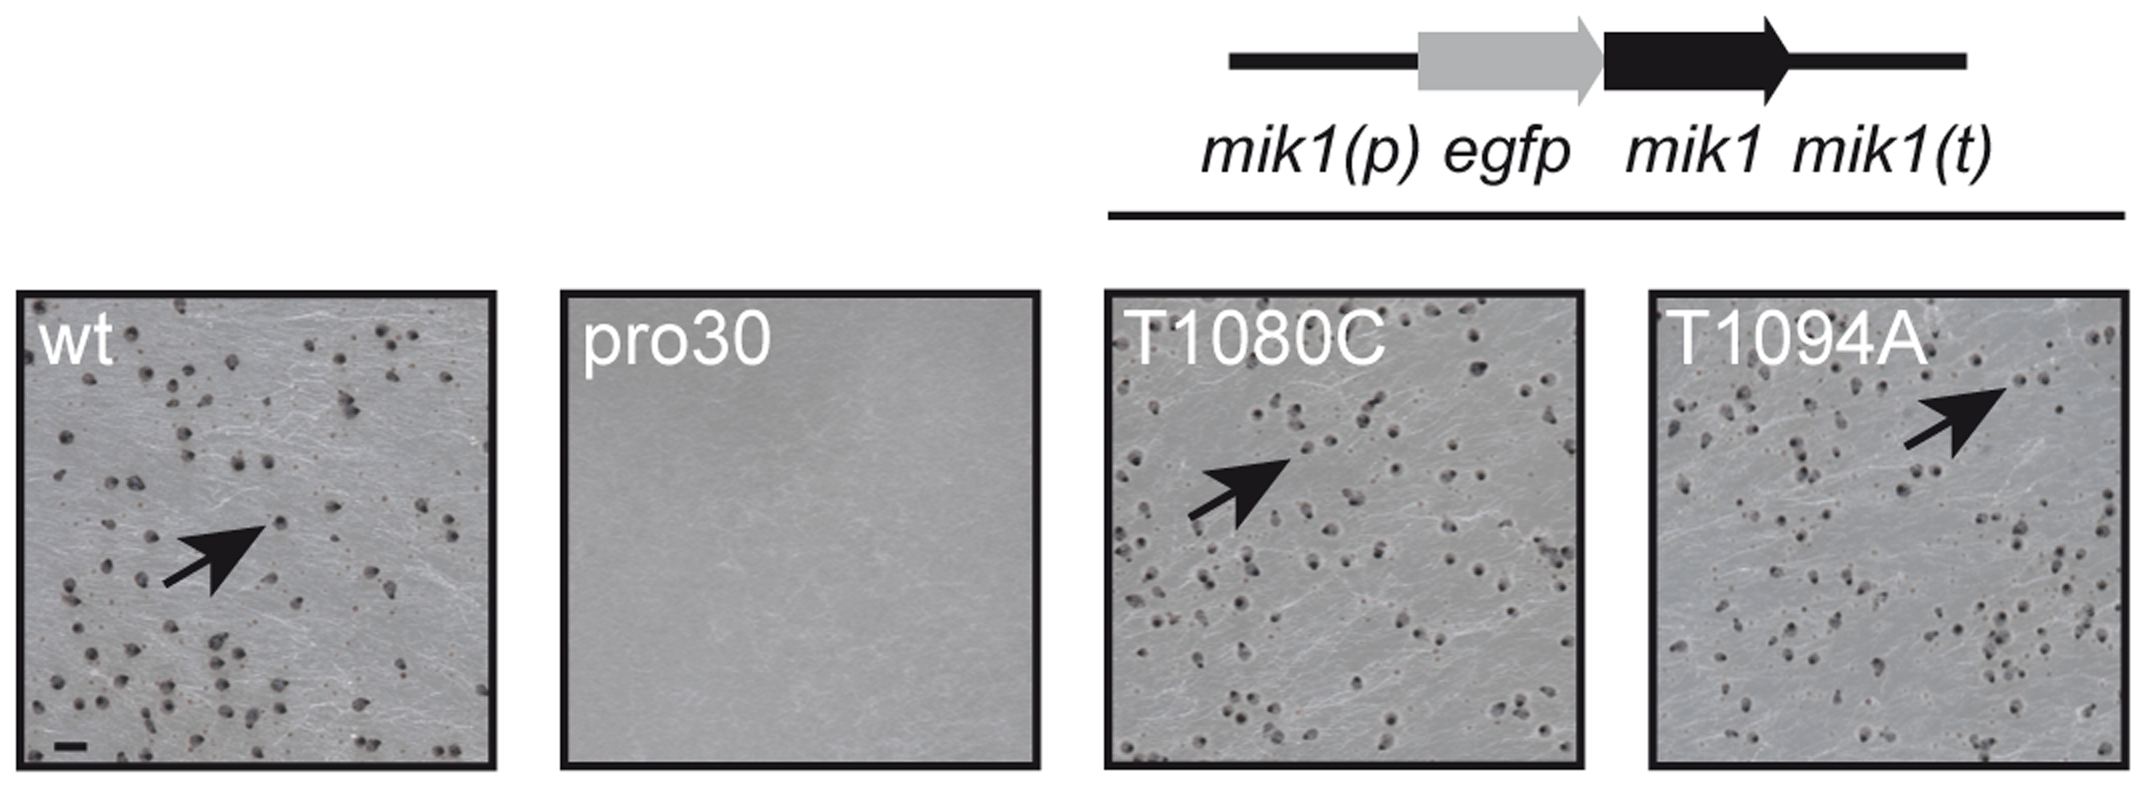 Complementation of pro30 with full-length <i>mik1</i>.